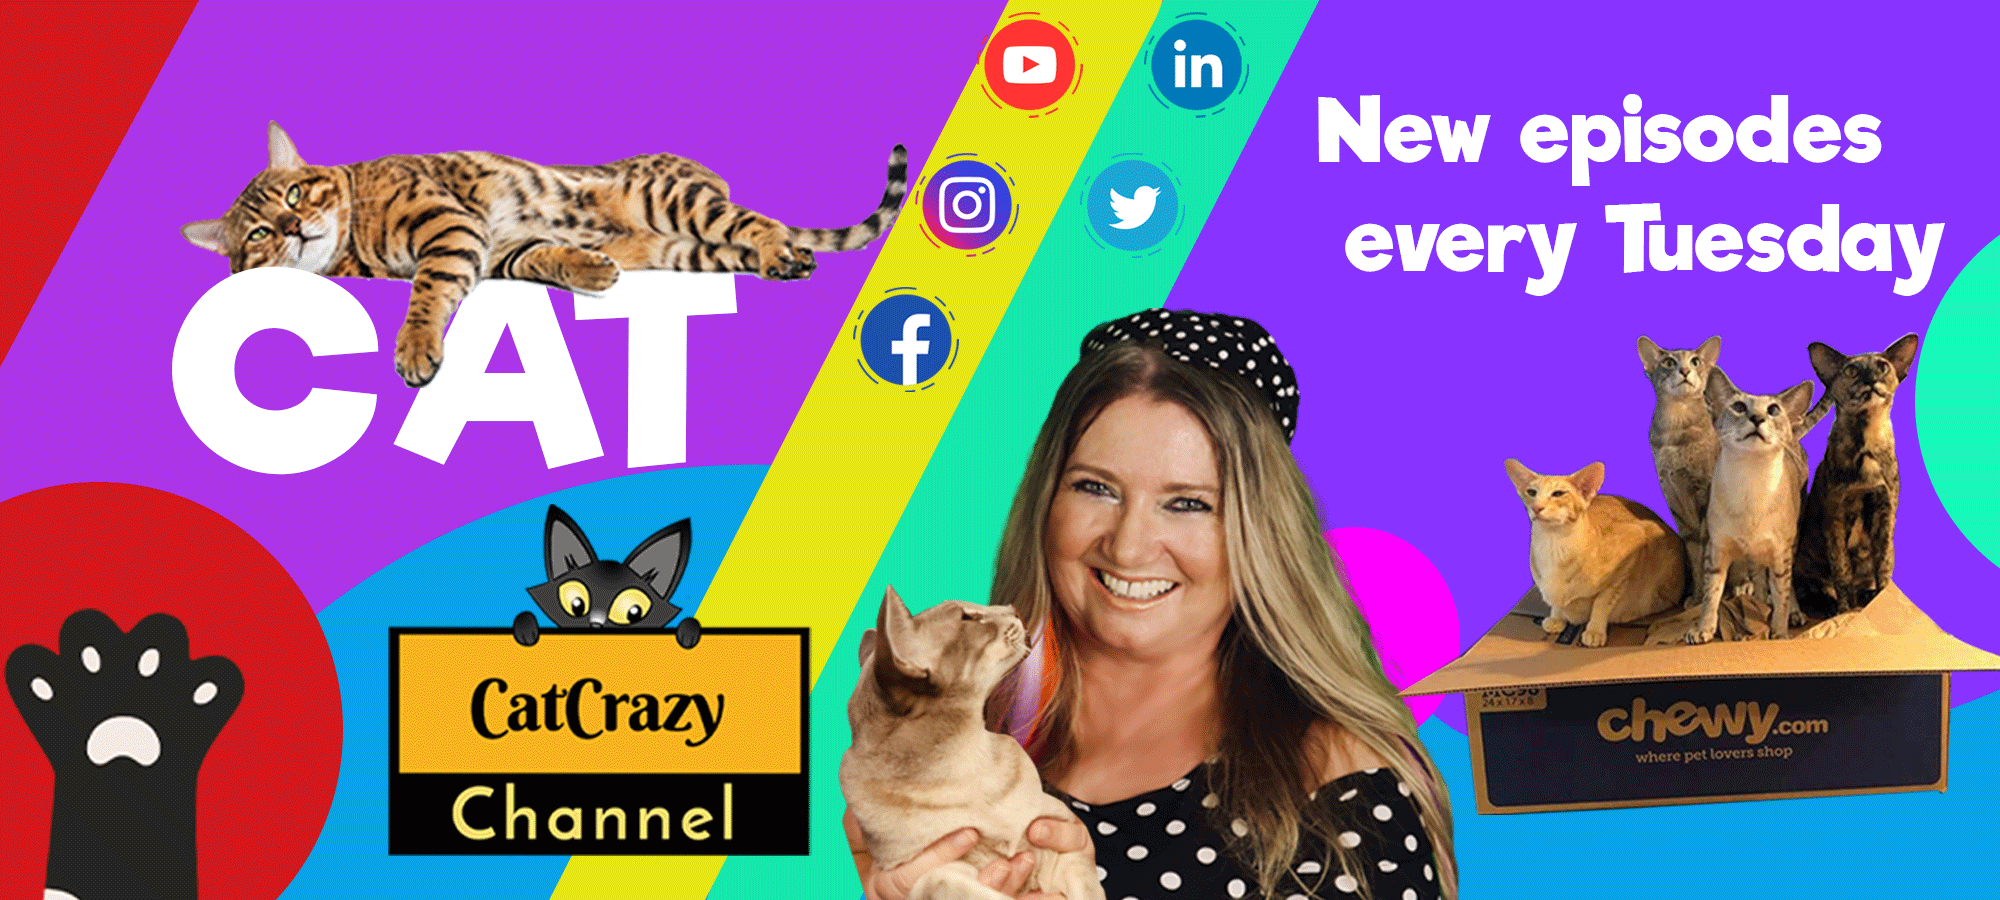 CatCrazy Channel